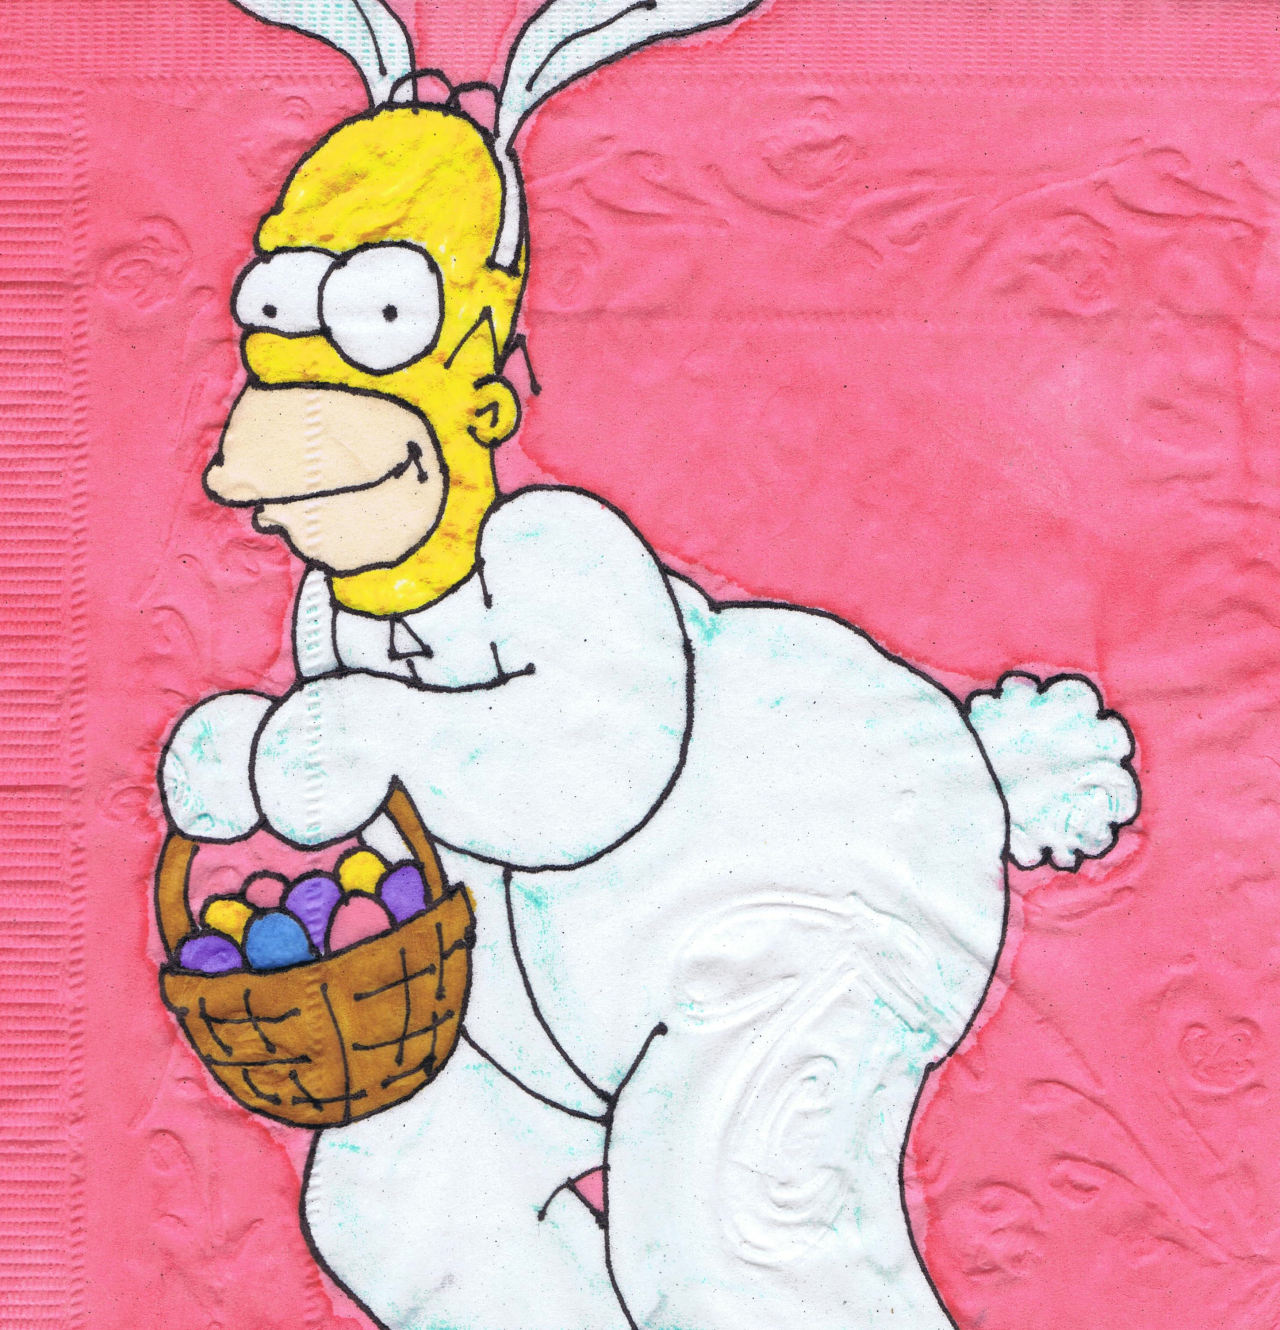 Happy Easter! New holiday napkin art, 2013.